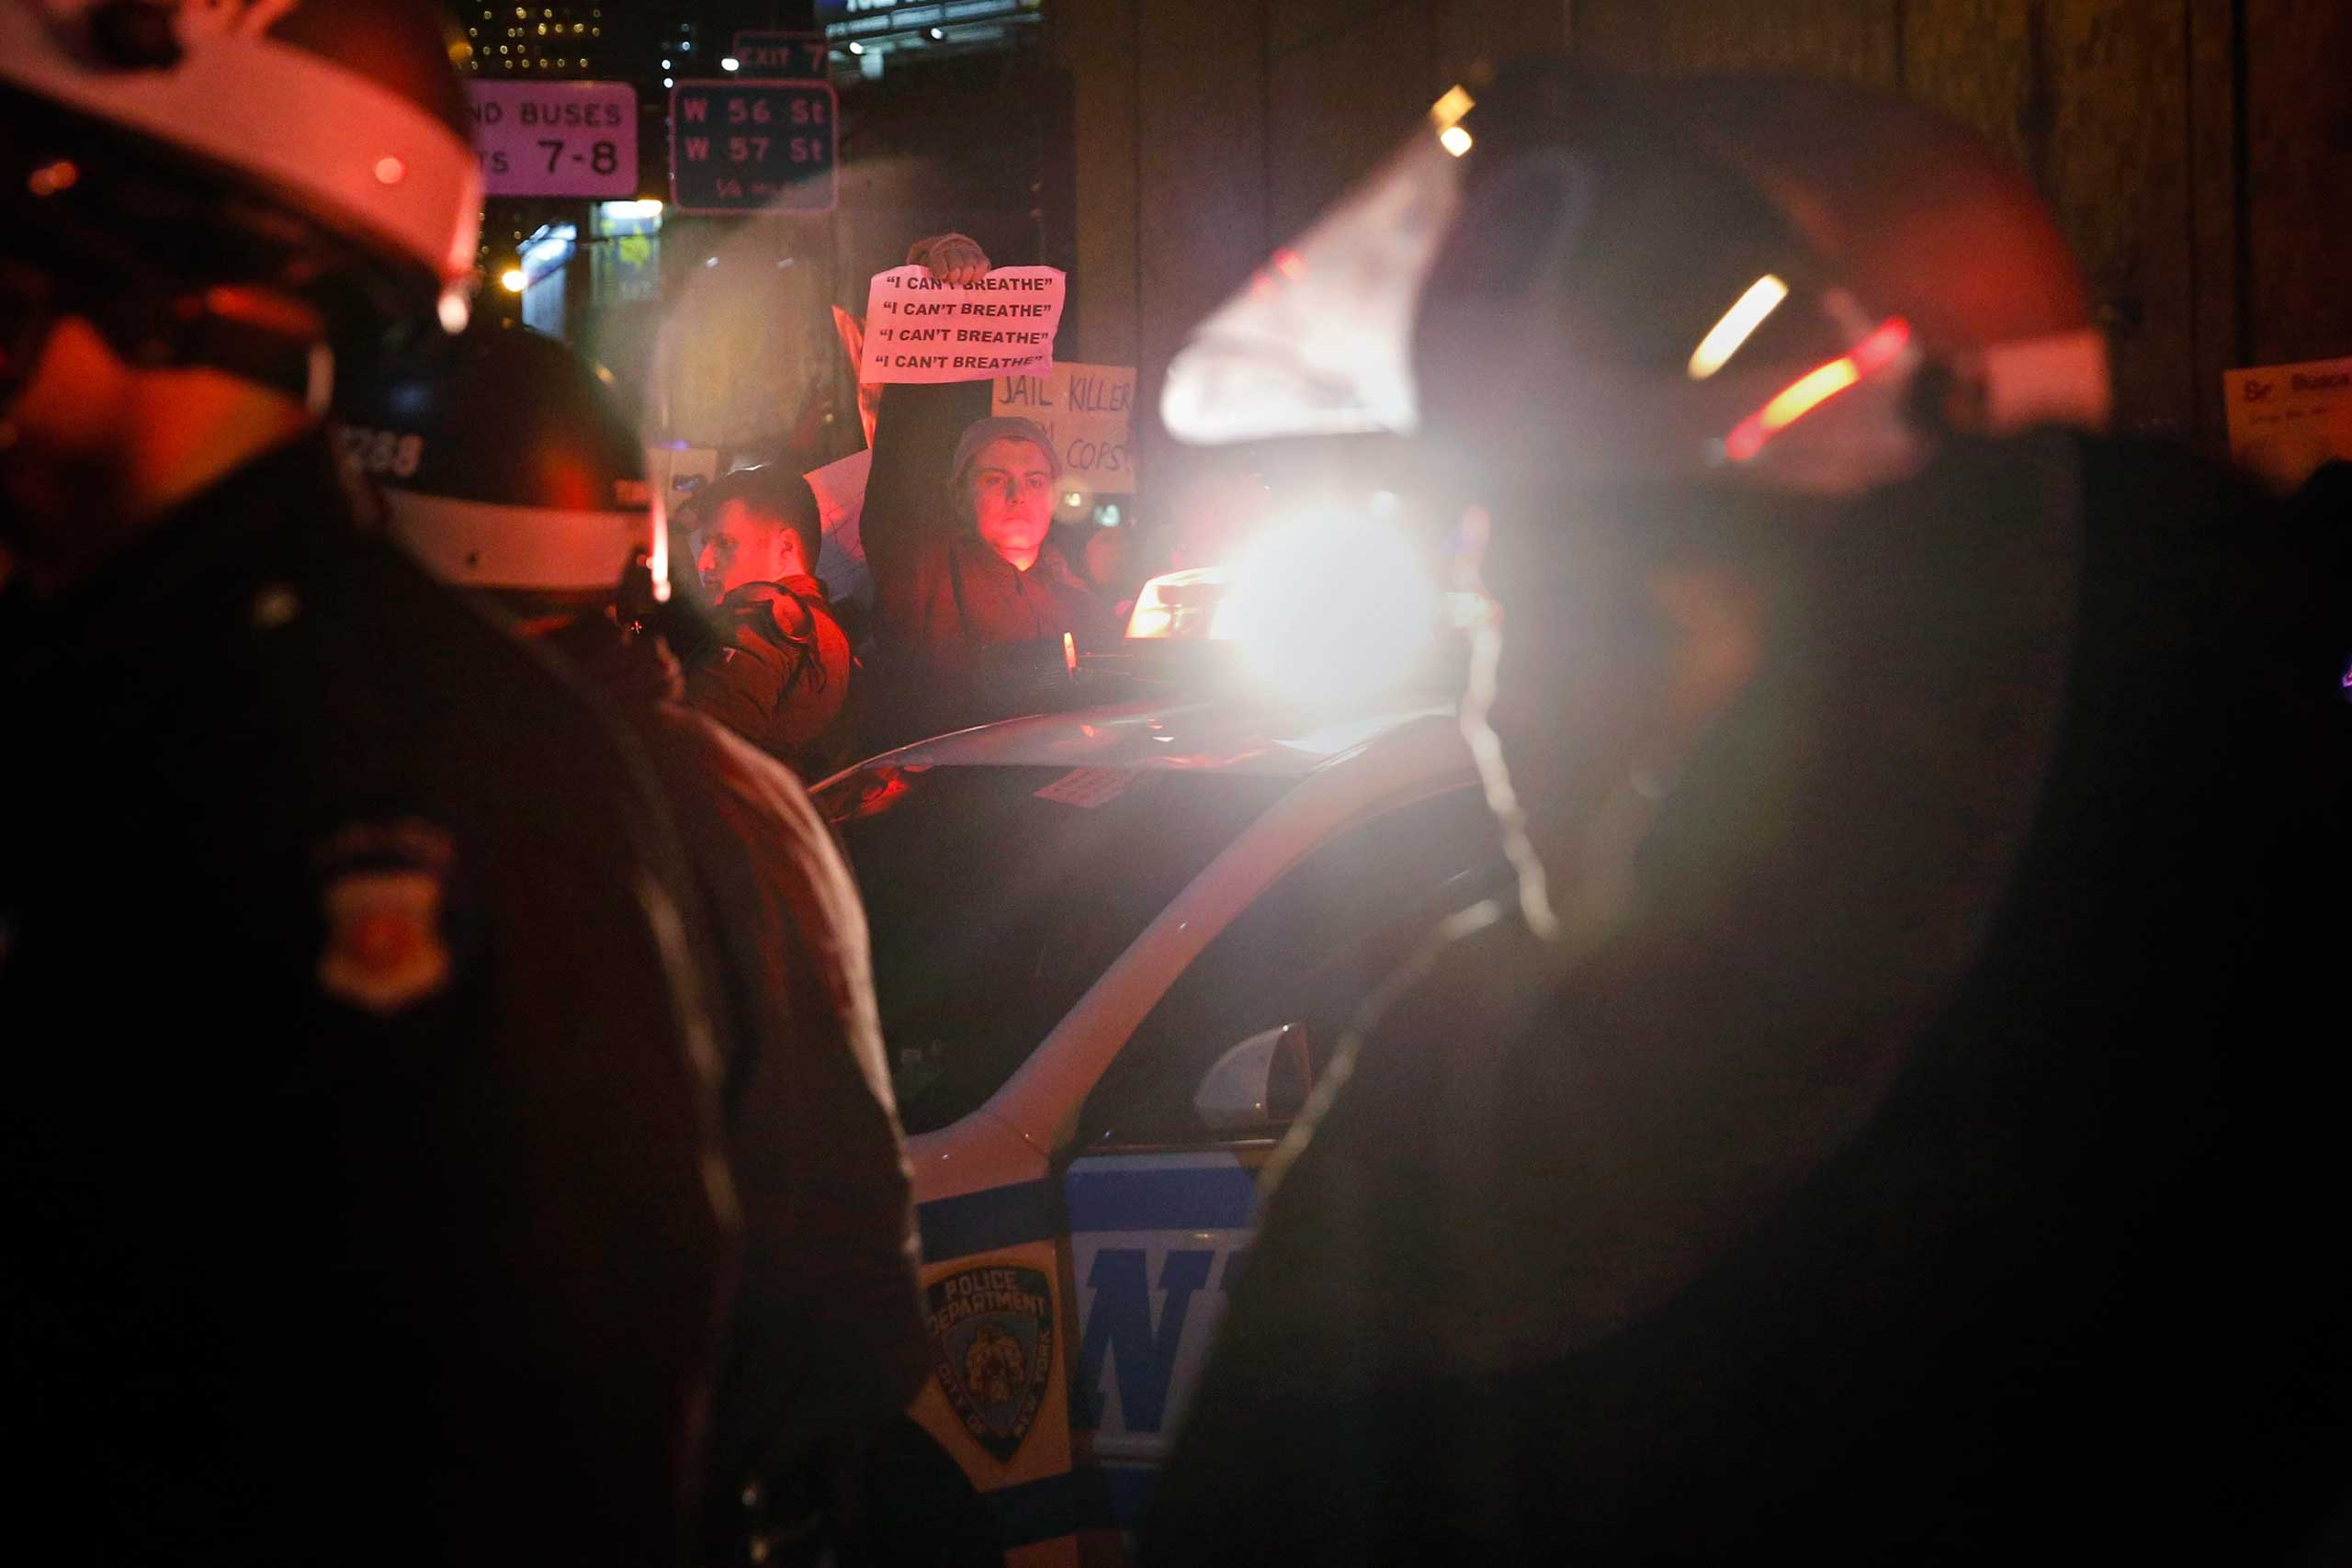 Police stand guard on the West Side highway as protesters block traffic in New York City on Dec. 3, 2014.